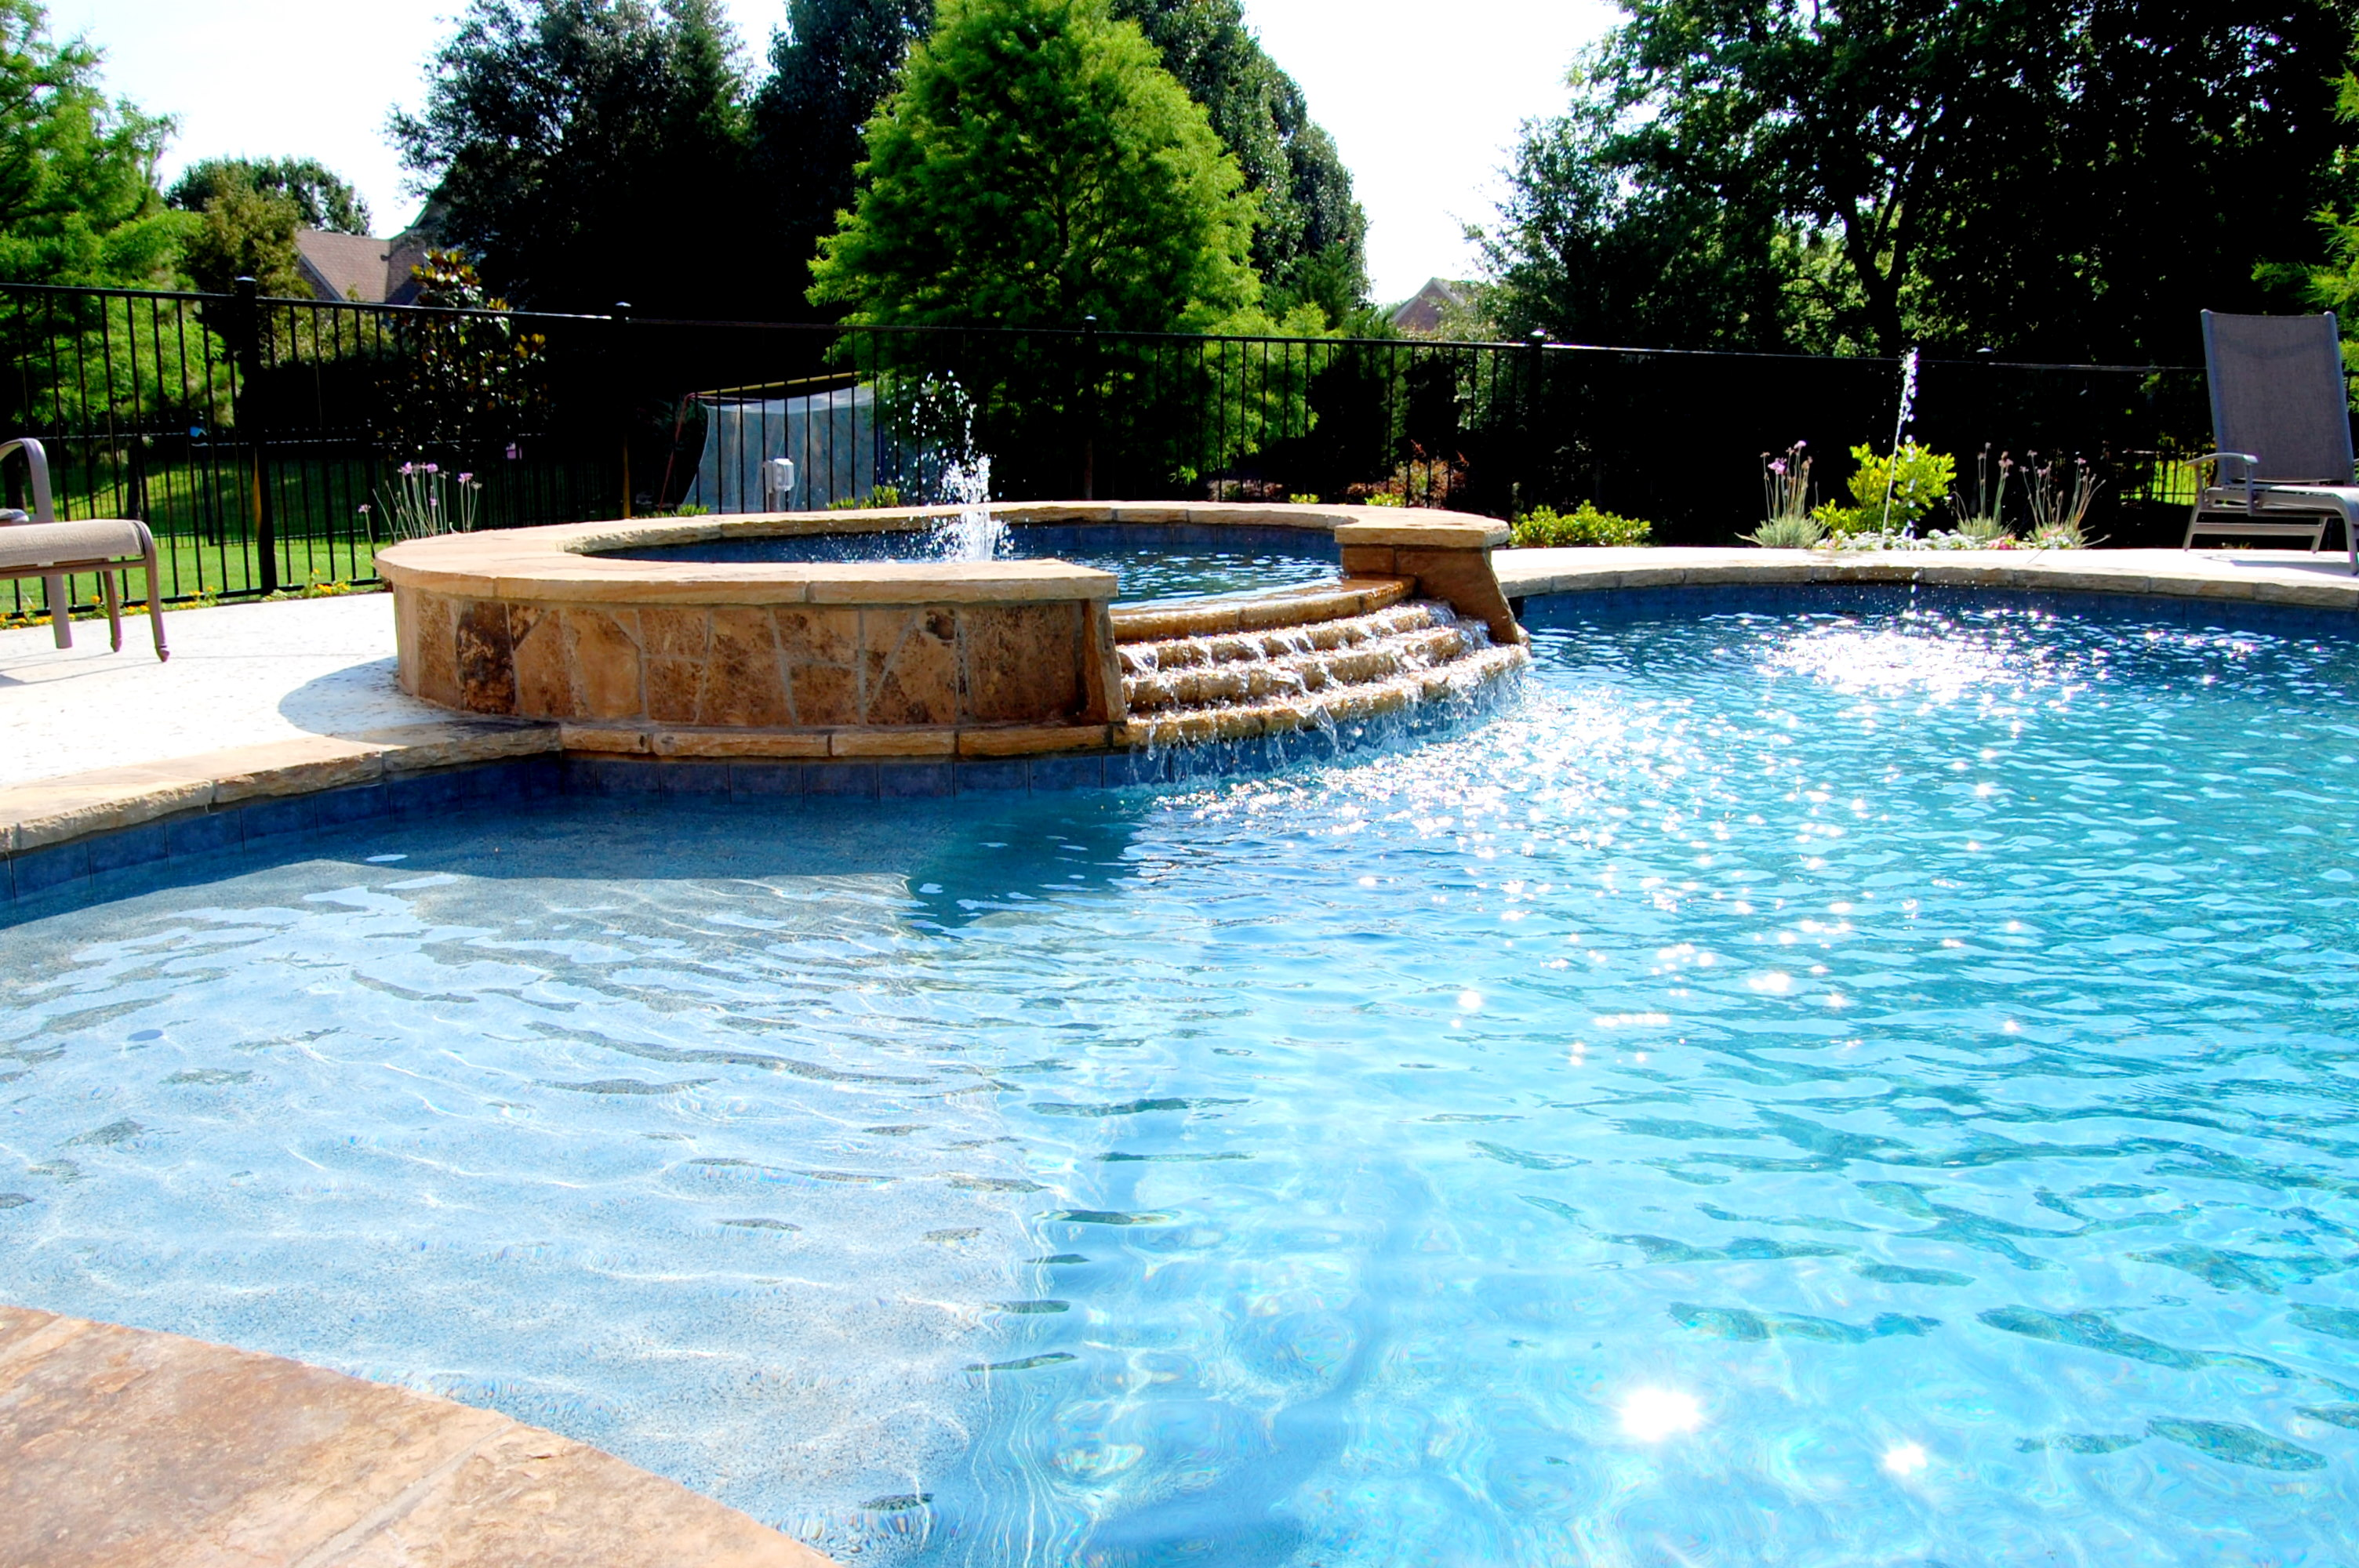 Pool cleaning service installation in arlington tx for Pictures of a pool